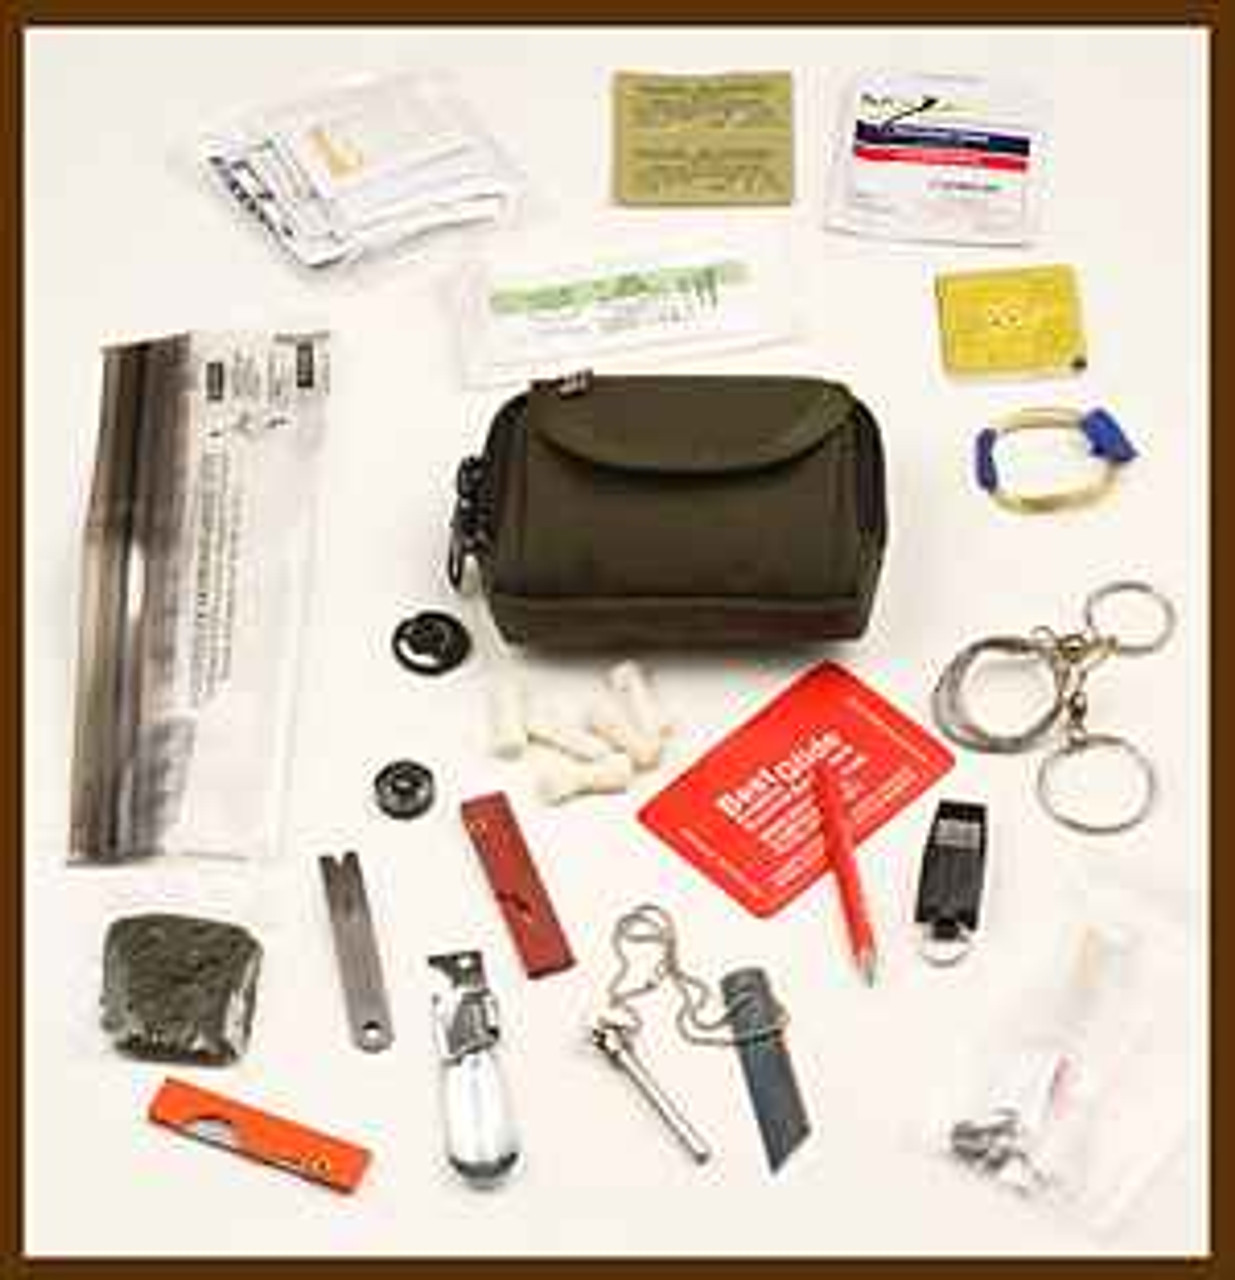 ESEE Basic E&E Survival Kit